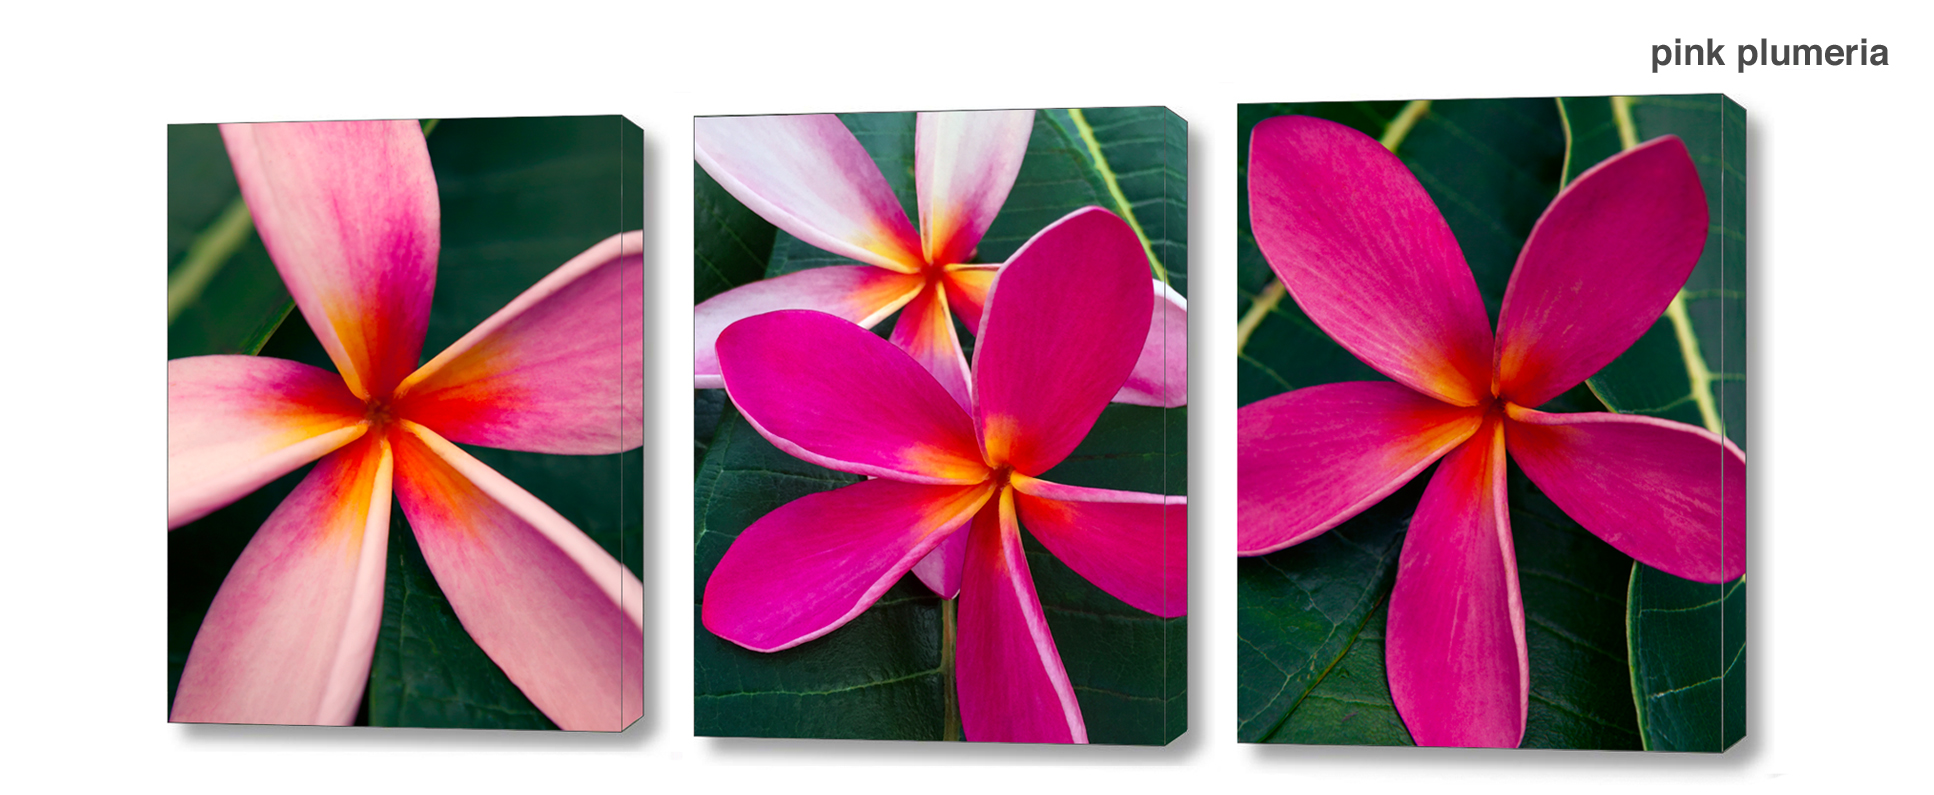 pink plumeria series - Floral Series Wall Decor Macro Photography Matted & Giclée Canvas Prints